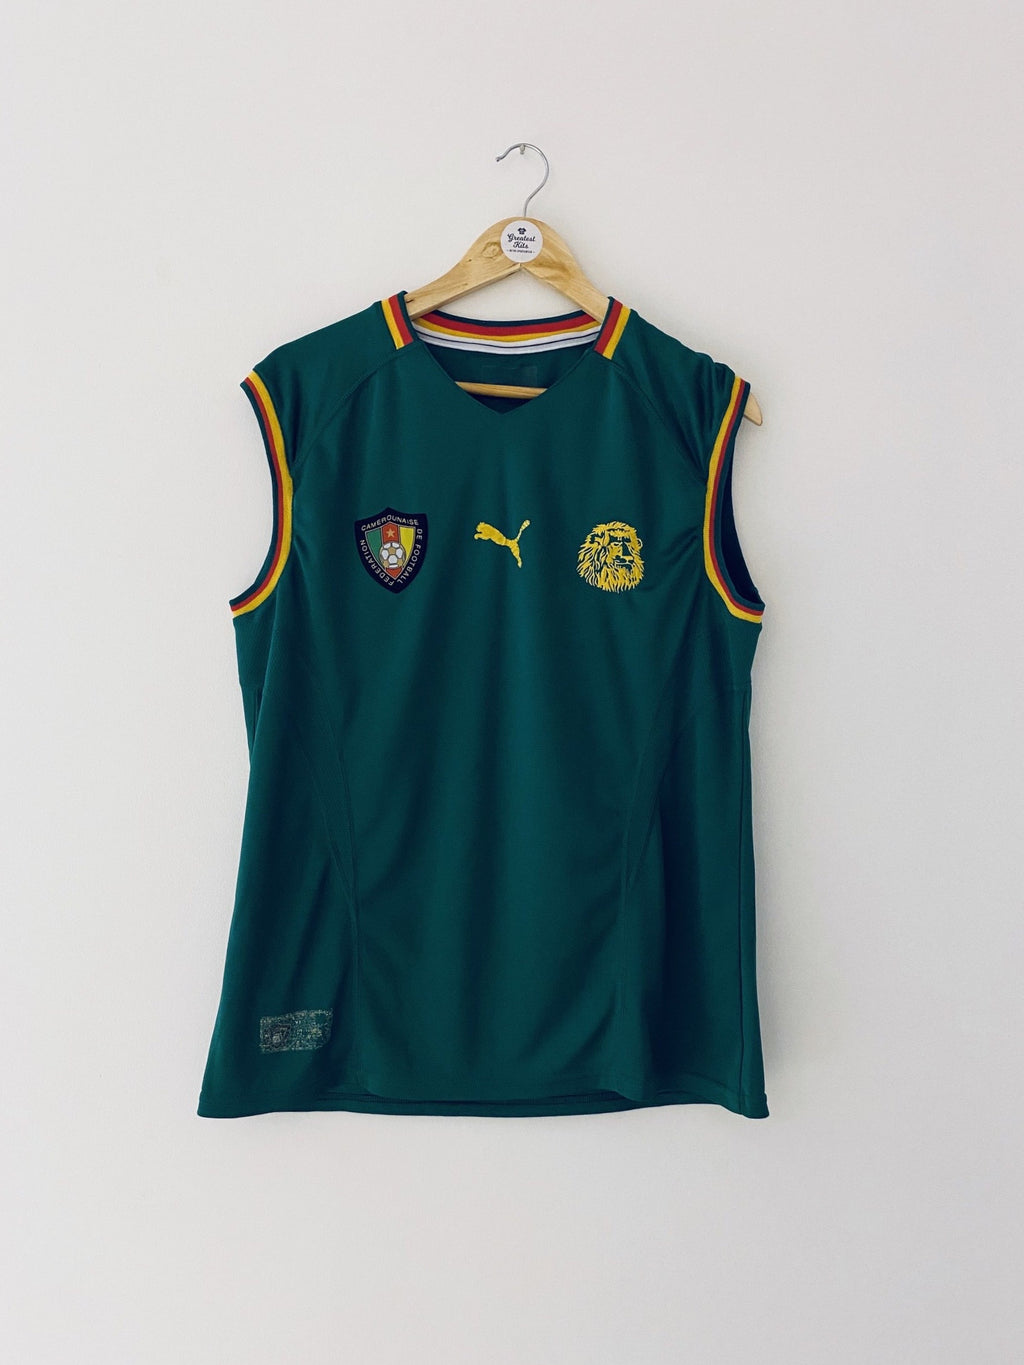 2002 Cameroon Home Vest (M) 5.5/10